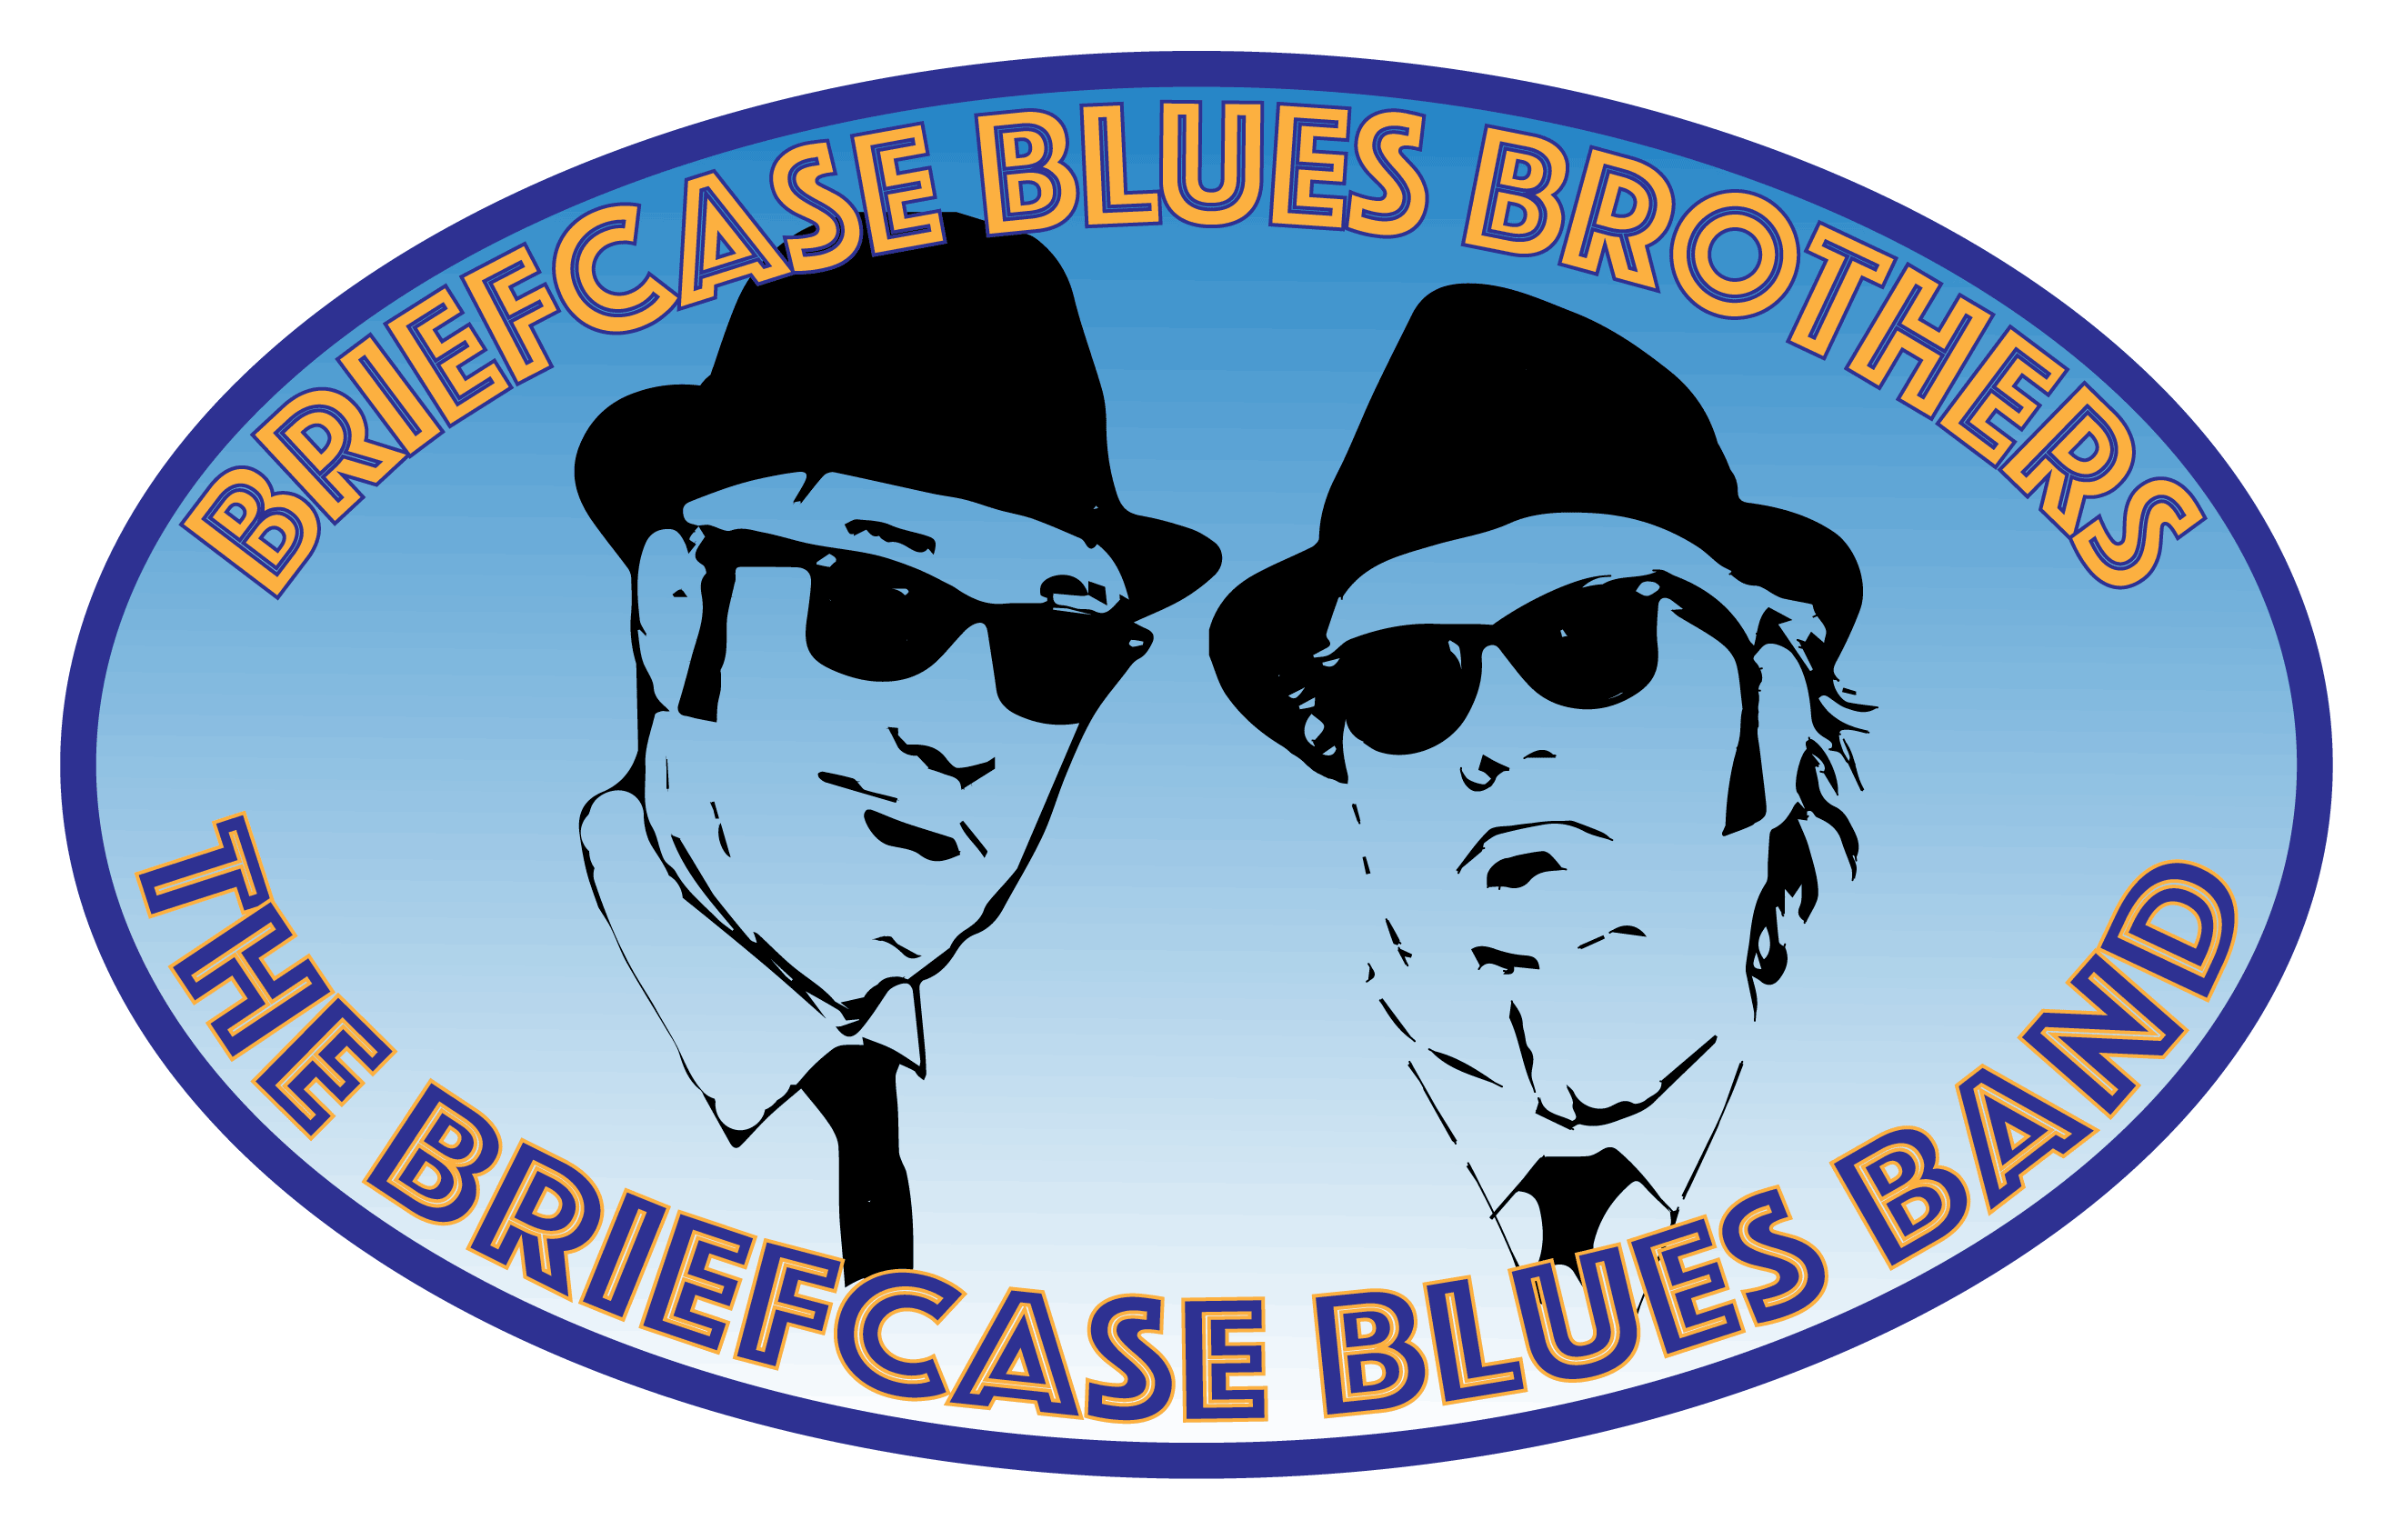 Briefcase Blues Brothers